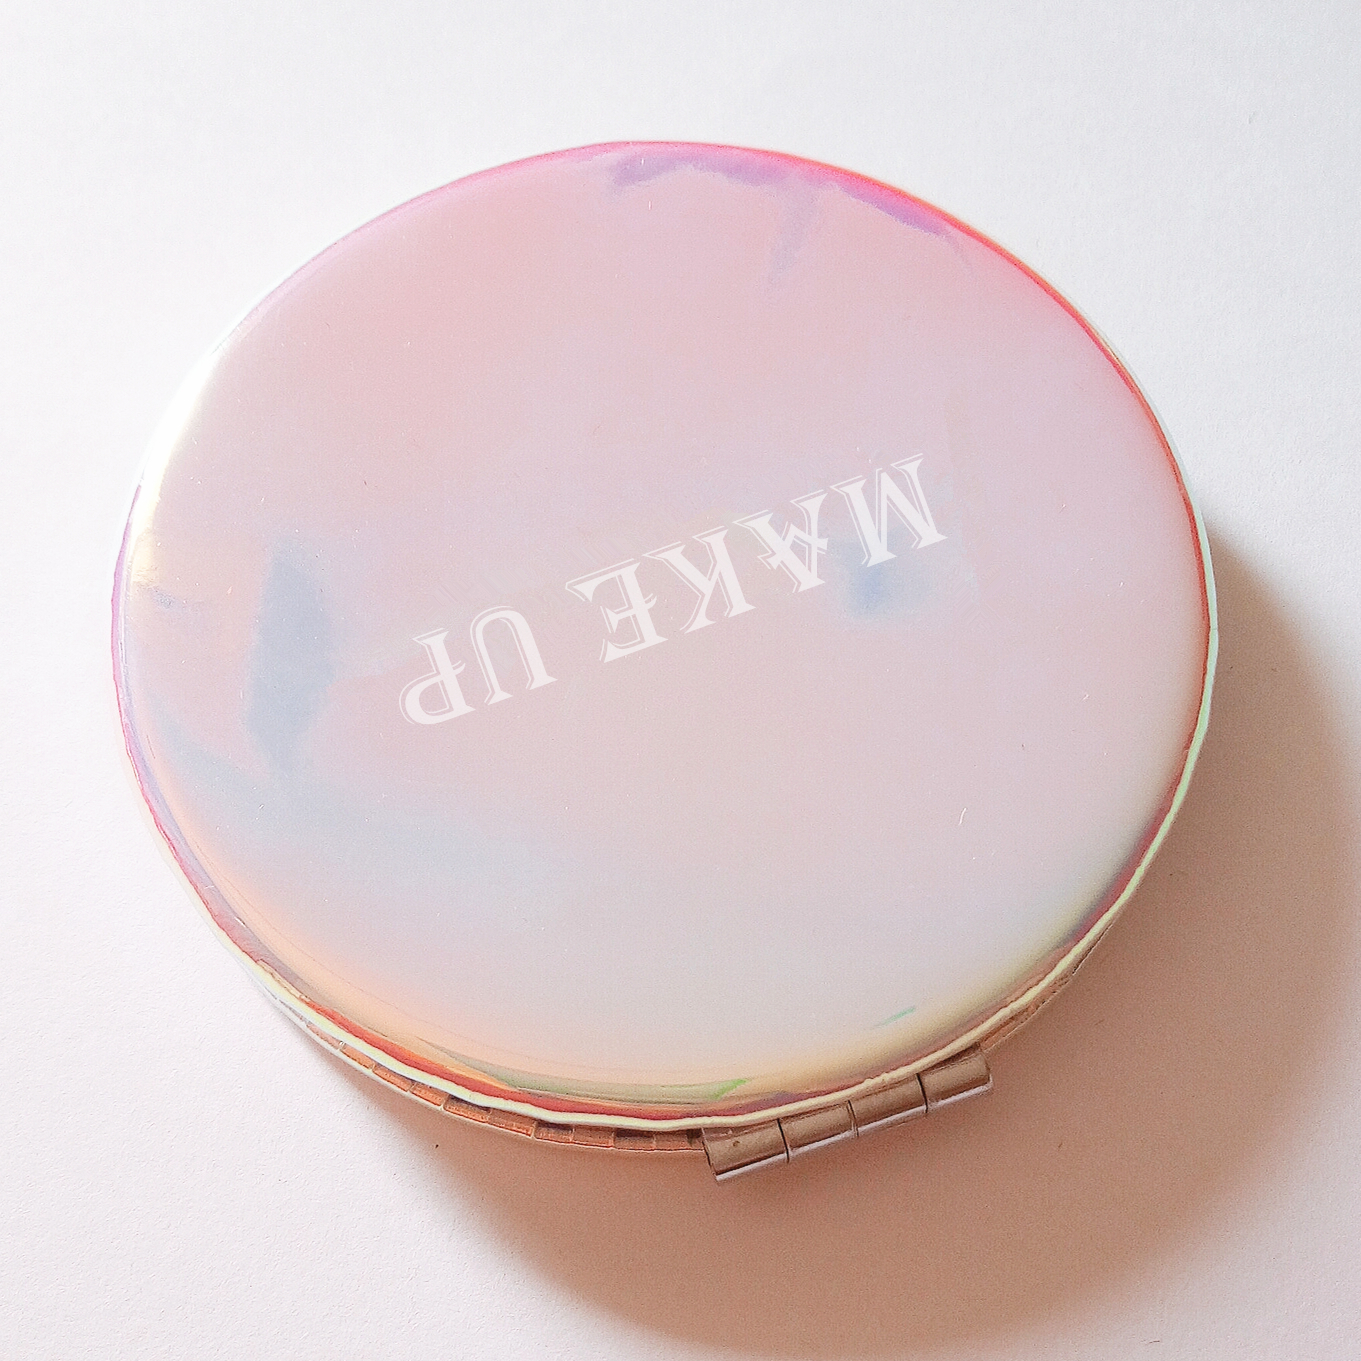 Personalized Compact Mirror Different colors in Different angles Rose Gold Monogrammed Mirror Personalized Gifts Bridal Party Proposal Gift Unique Bridal Party Gifts